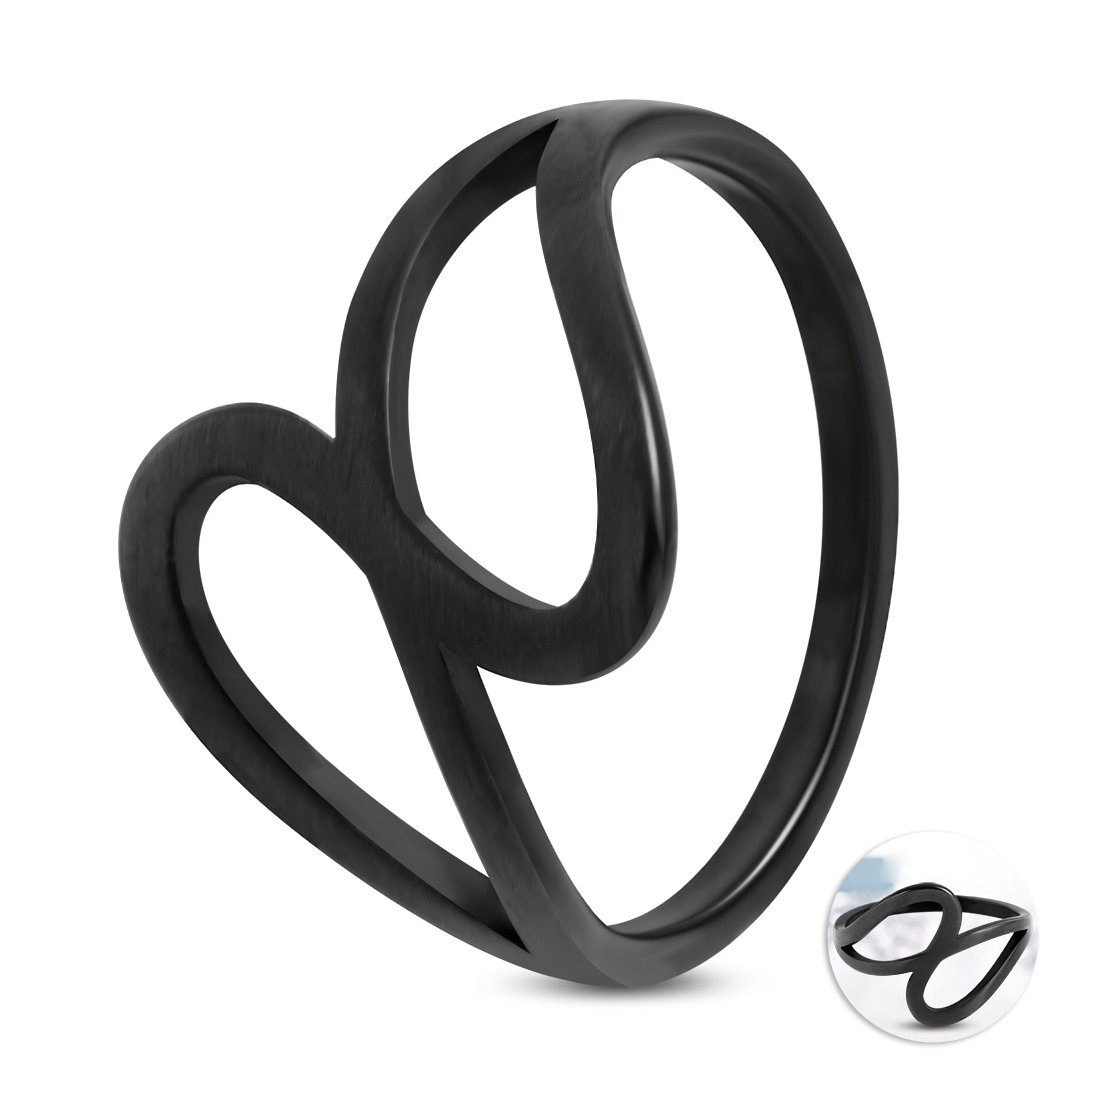 Stainless Steel Black Matte Finished Spiral Oval Fancy Ring